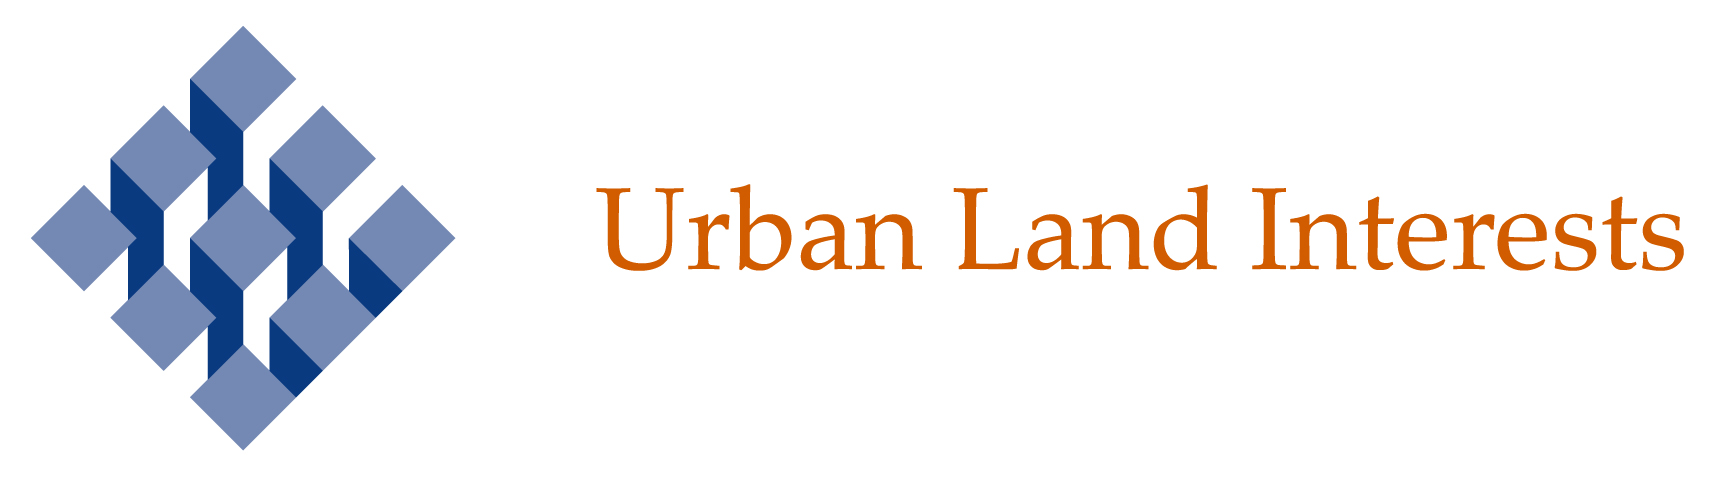 Urban Land logo (2)